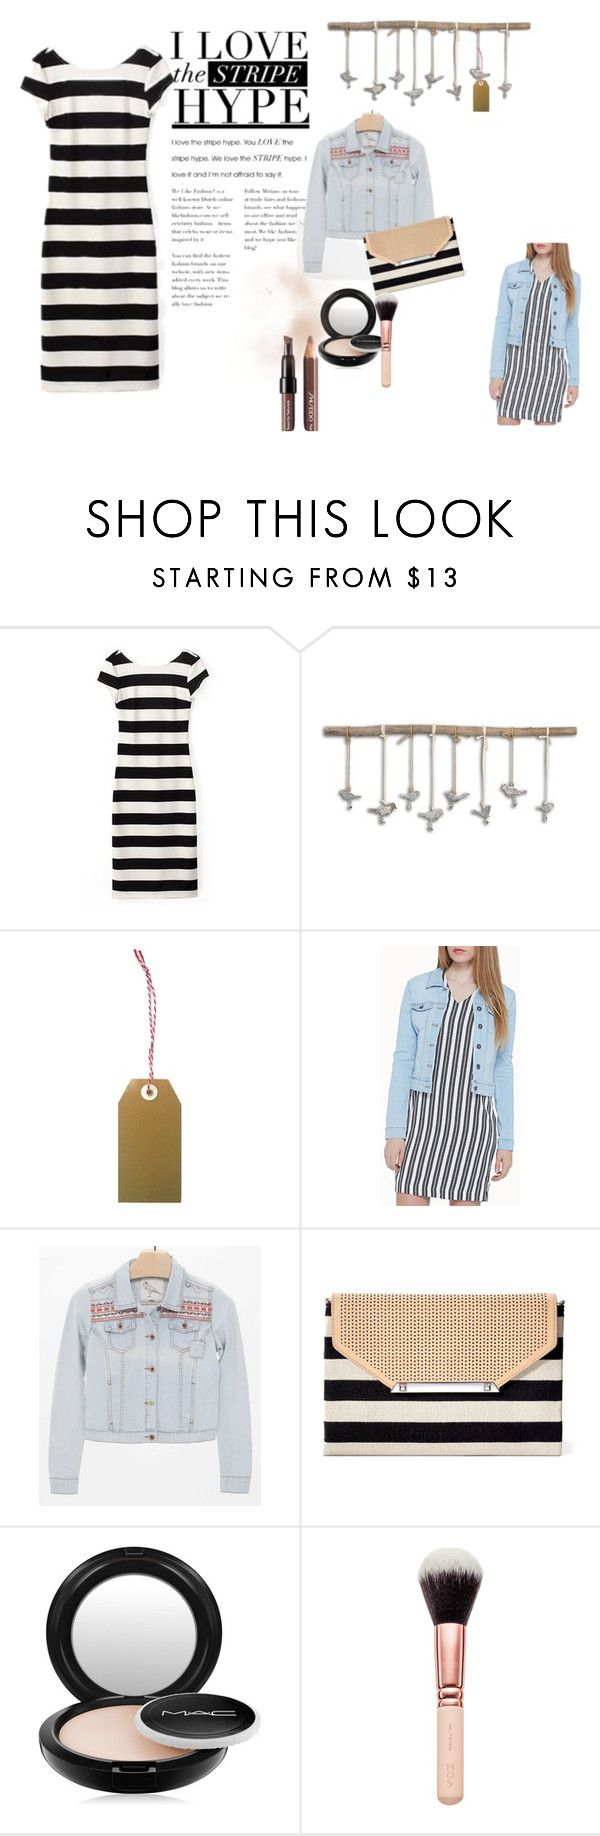 """""""stripe 4"""" by ajriyaf on Polyvore featuring Home Decorators Collection, Vero Moda, White Crow, Stella & Dot, MAC Cosmetics and Shiseido"""